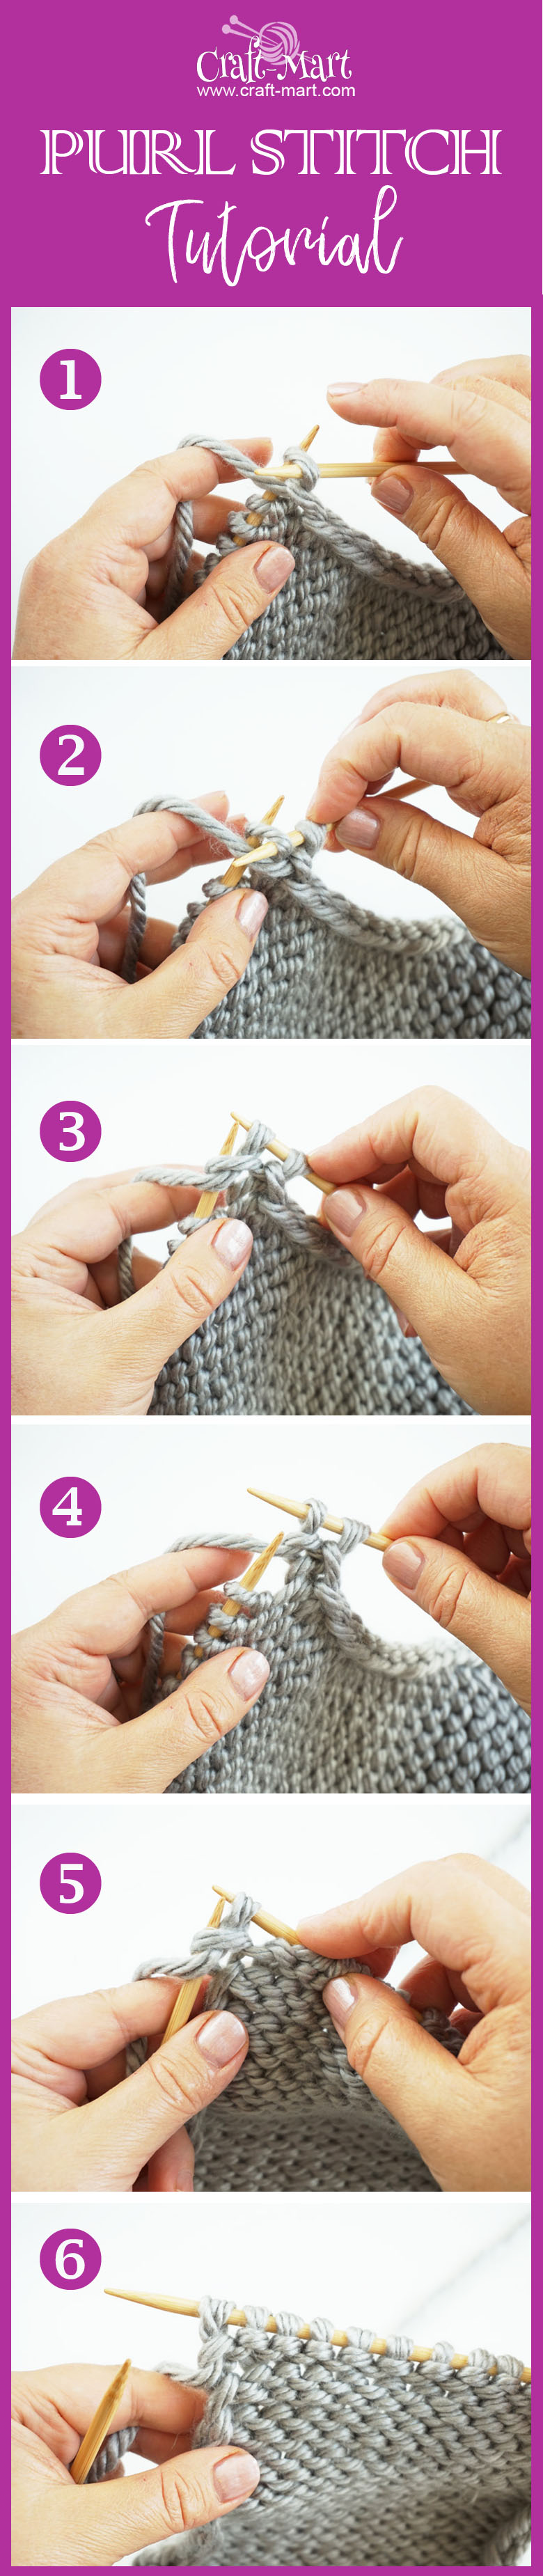 how to knit purl stitch for beginners by craft-mart.com